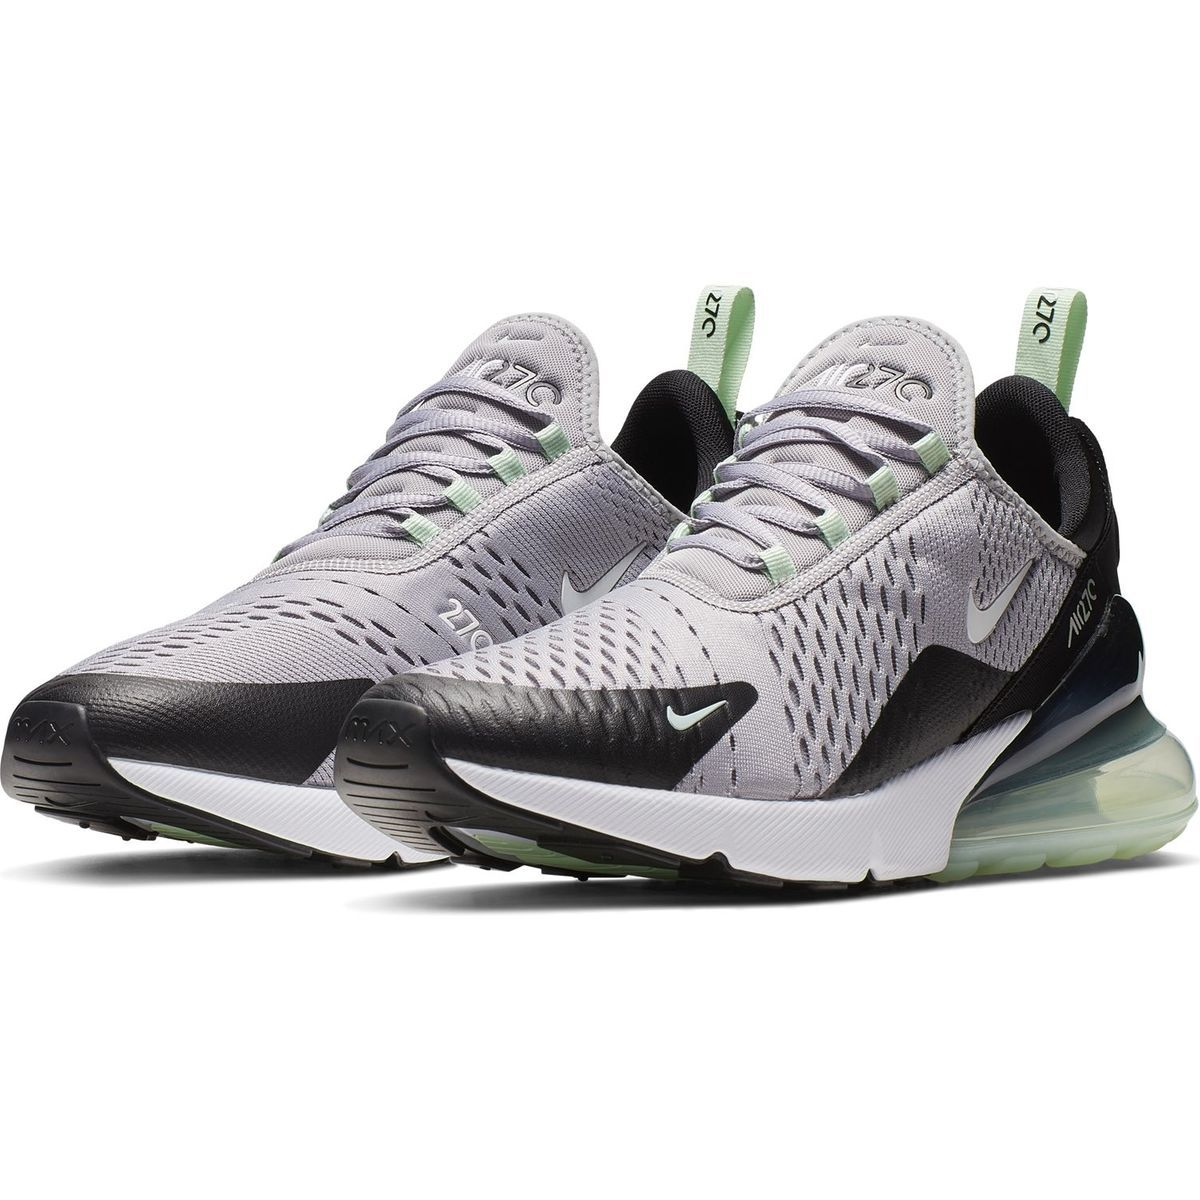 Baskets Air Max 270 Cj0520 Taille : 40;41;42;42 12;43